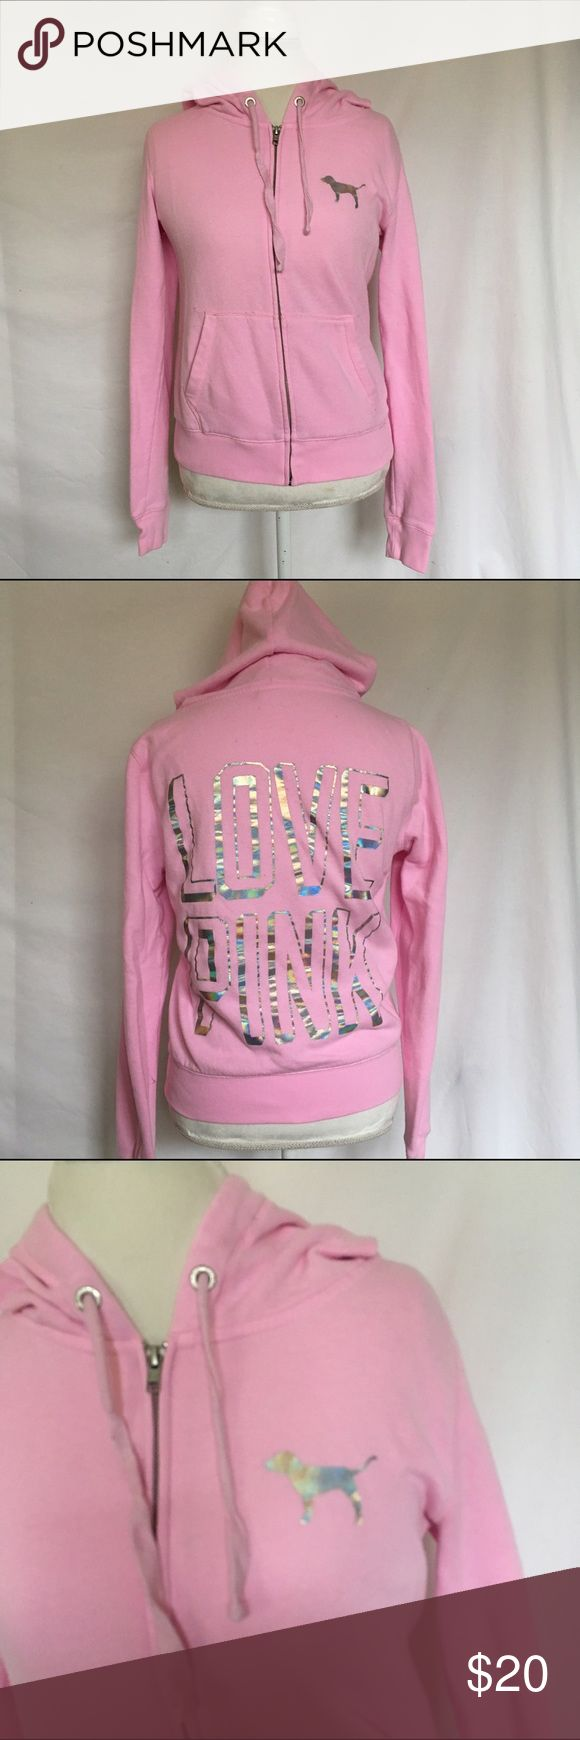 PINK Hoodie Light pink Victoria's Secret hoodie with hologram print on front and back. In great condition. 100% cotton PINK Victoria's Secret Tops Sweatshirts & Hoodies